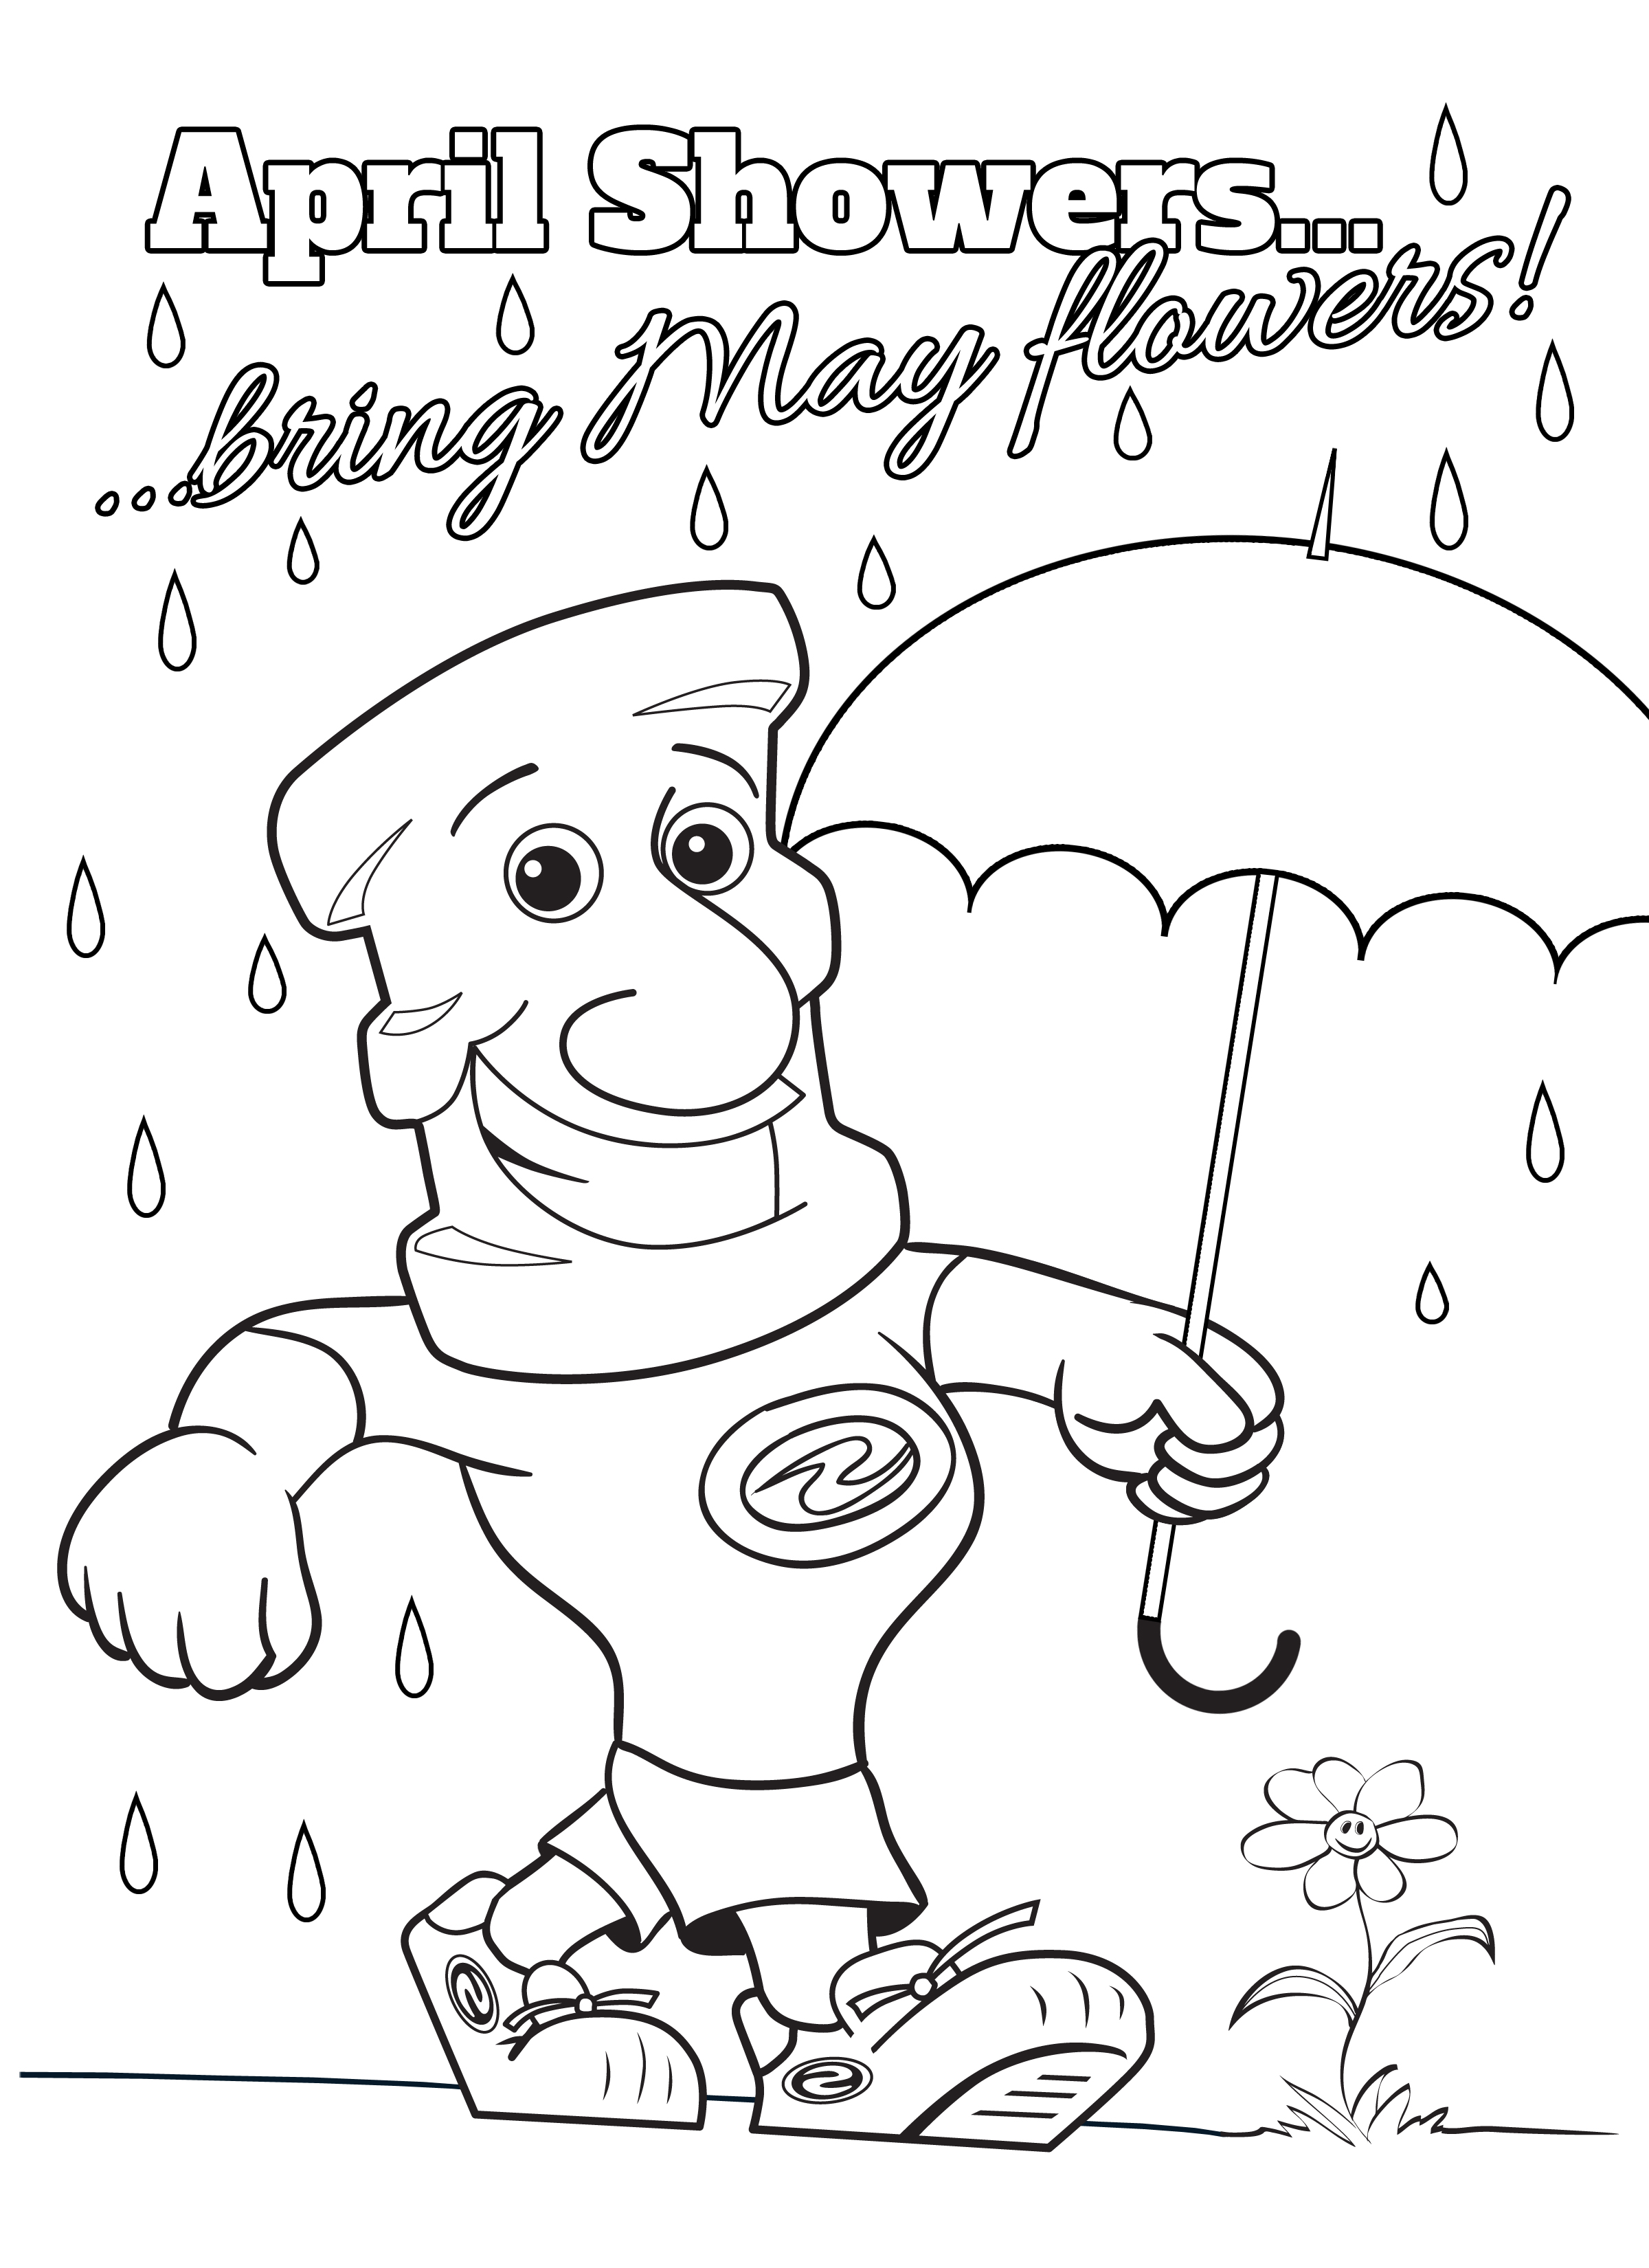 April showers clipart to color transparent stock April Showers Coloring Pages - Coloring Pages & Books transparent stock